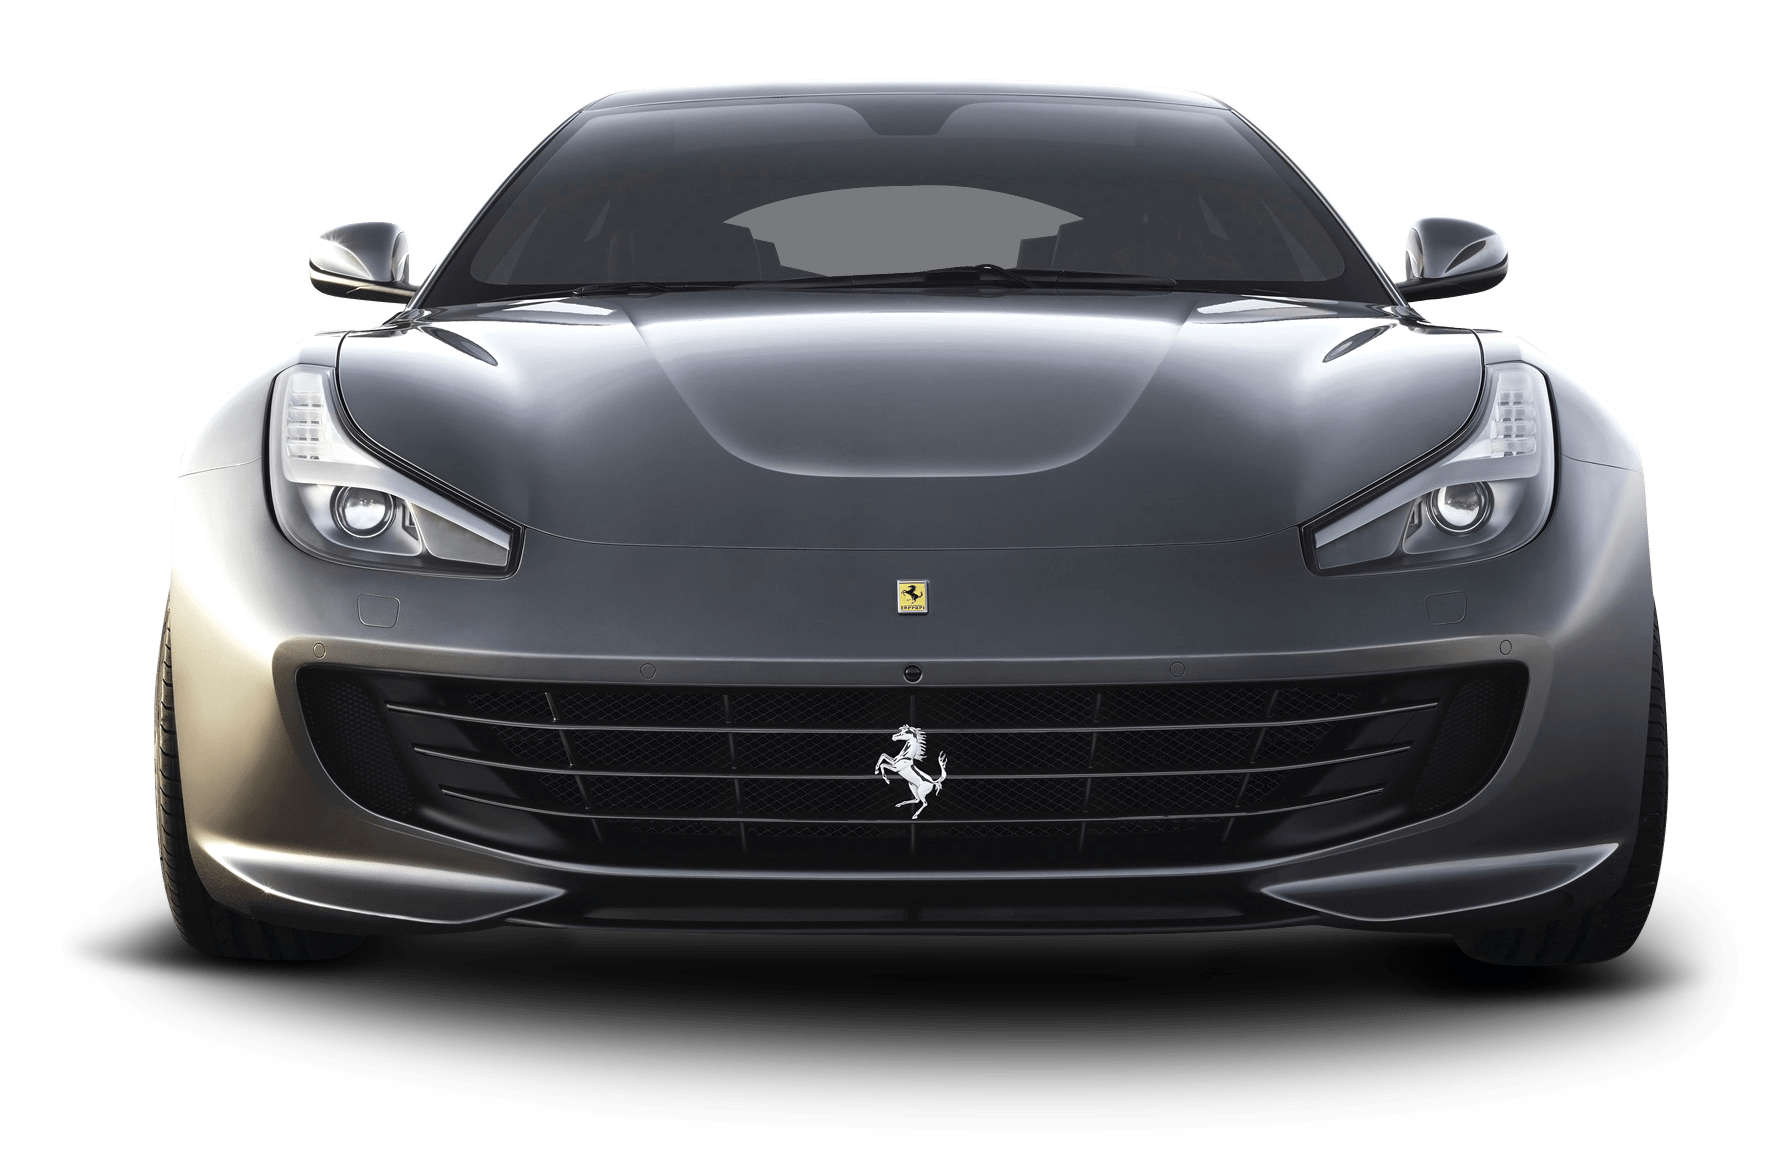 Ferrari Front View Transparent Png Stickpng